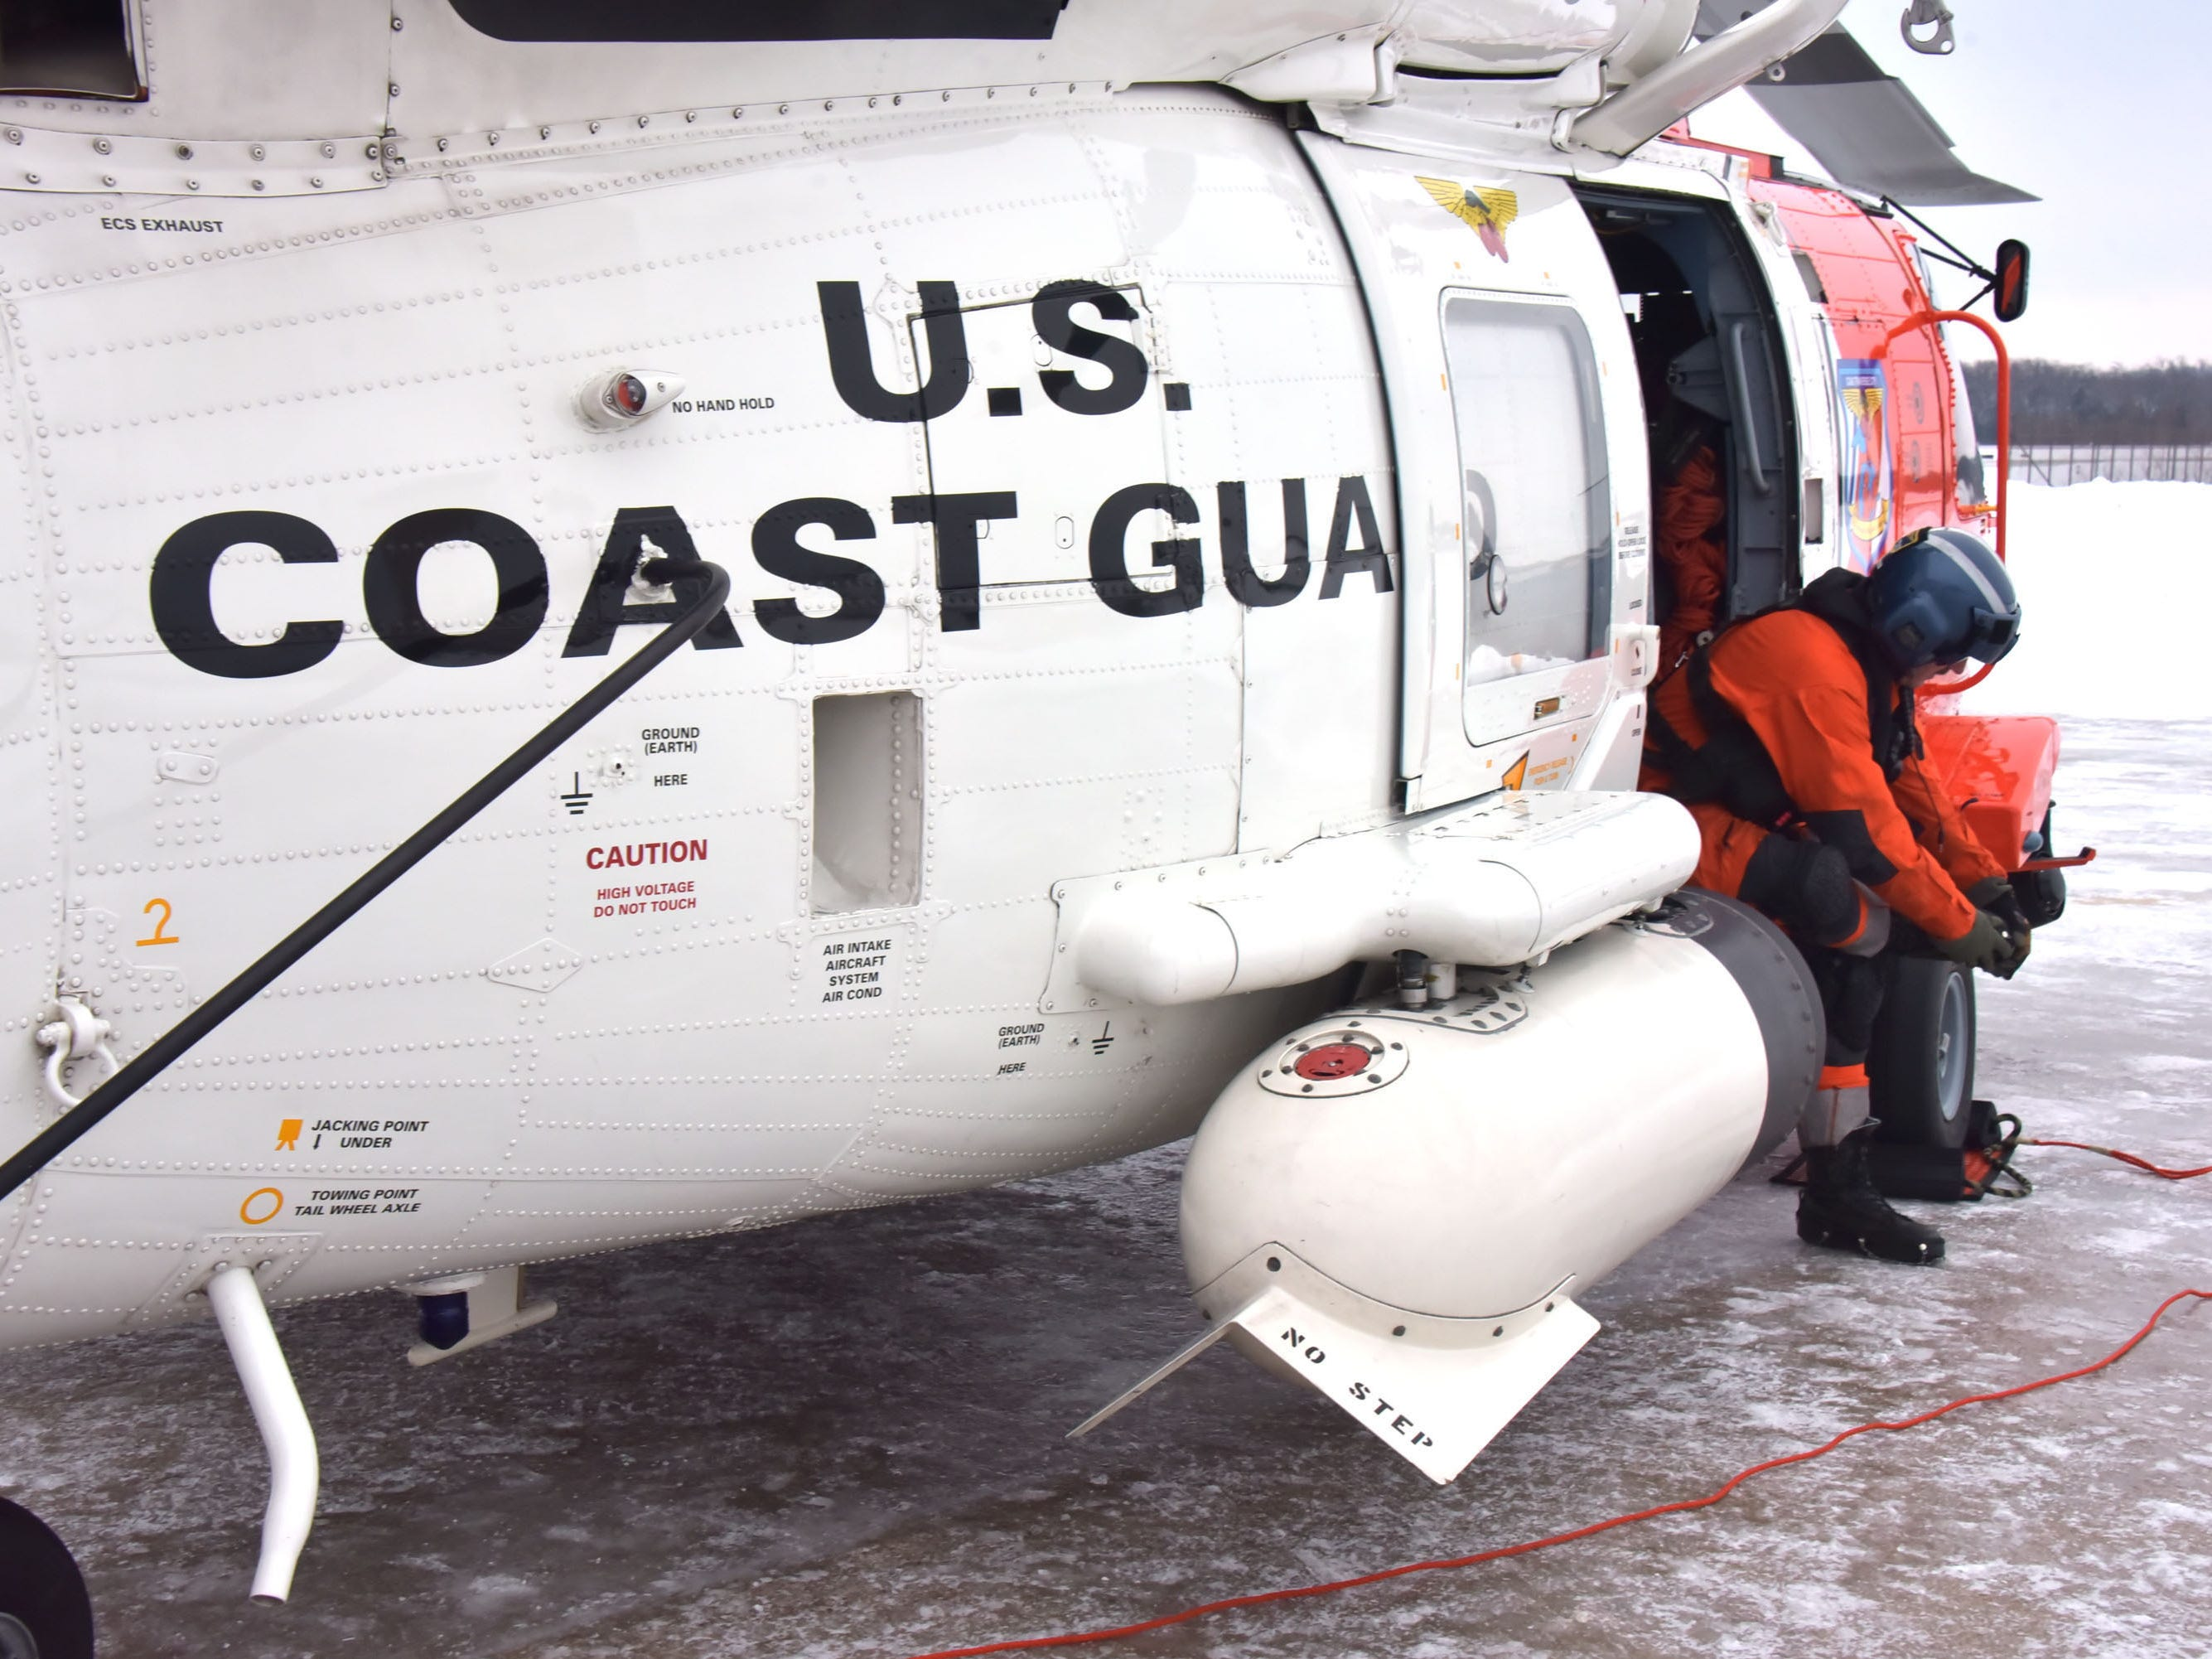 U.S. Coast Guard Air Station Traverse City's John Axelson pulls on ice cleats prior to an Aids to Navigation flight.